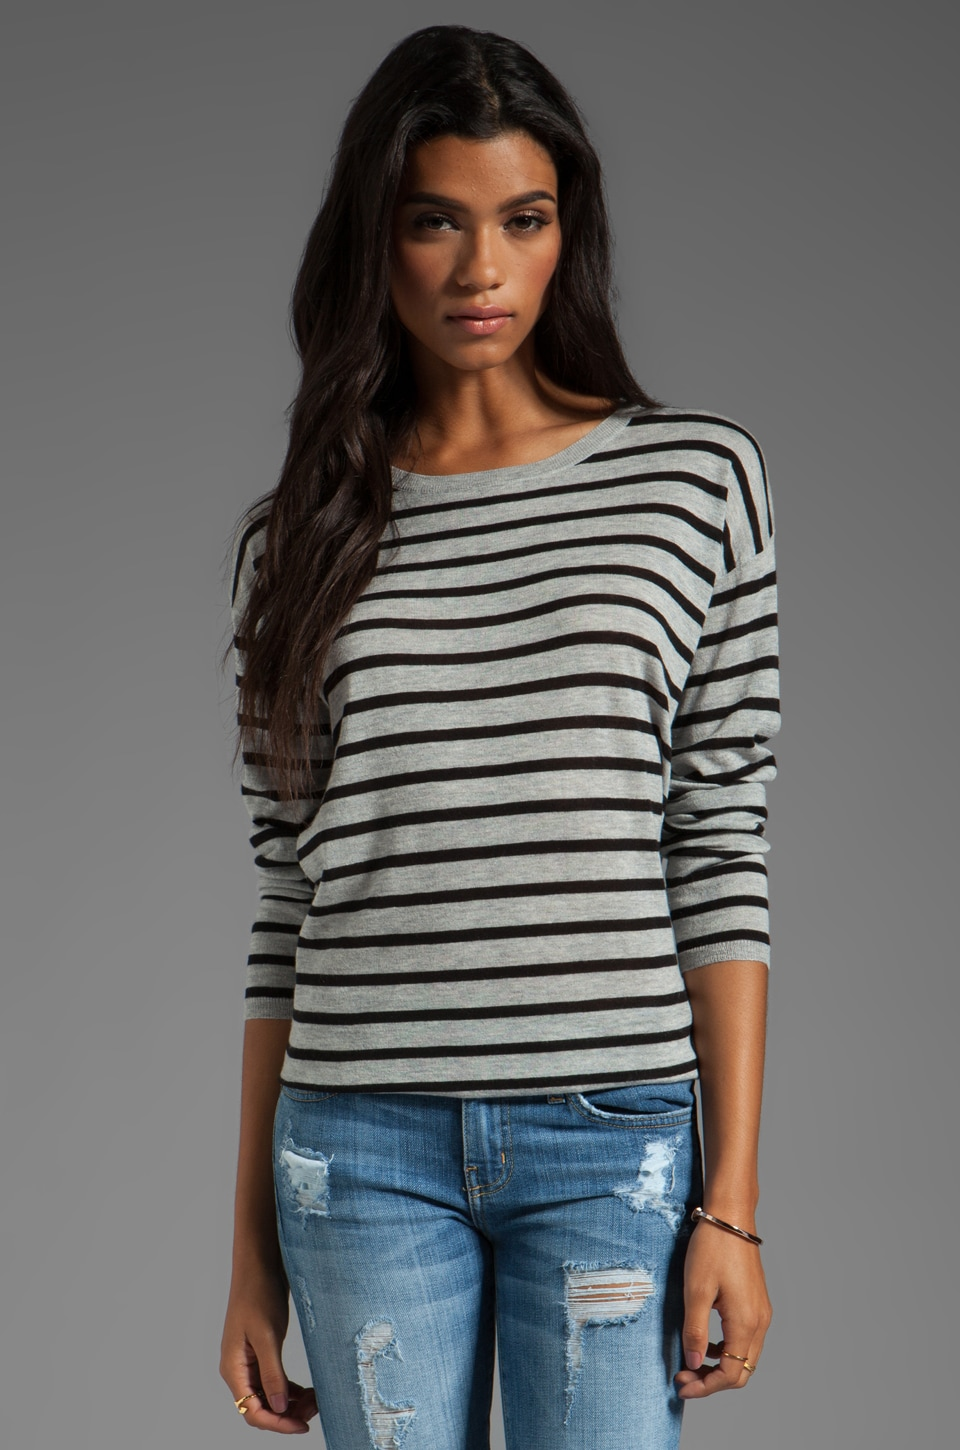 Joie Feather Weight Pop Stripe Millie Top in Caviar/Light Heather Grey